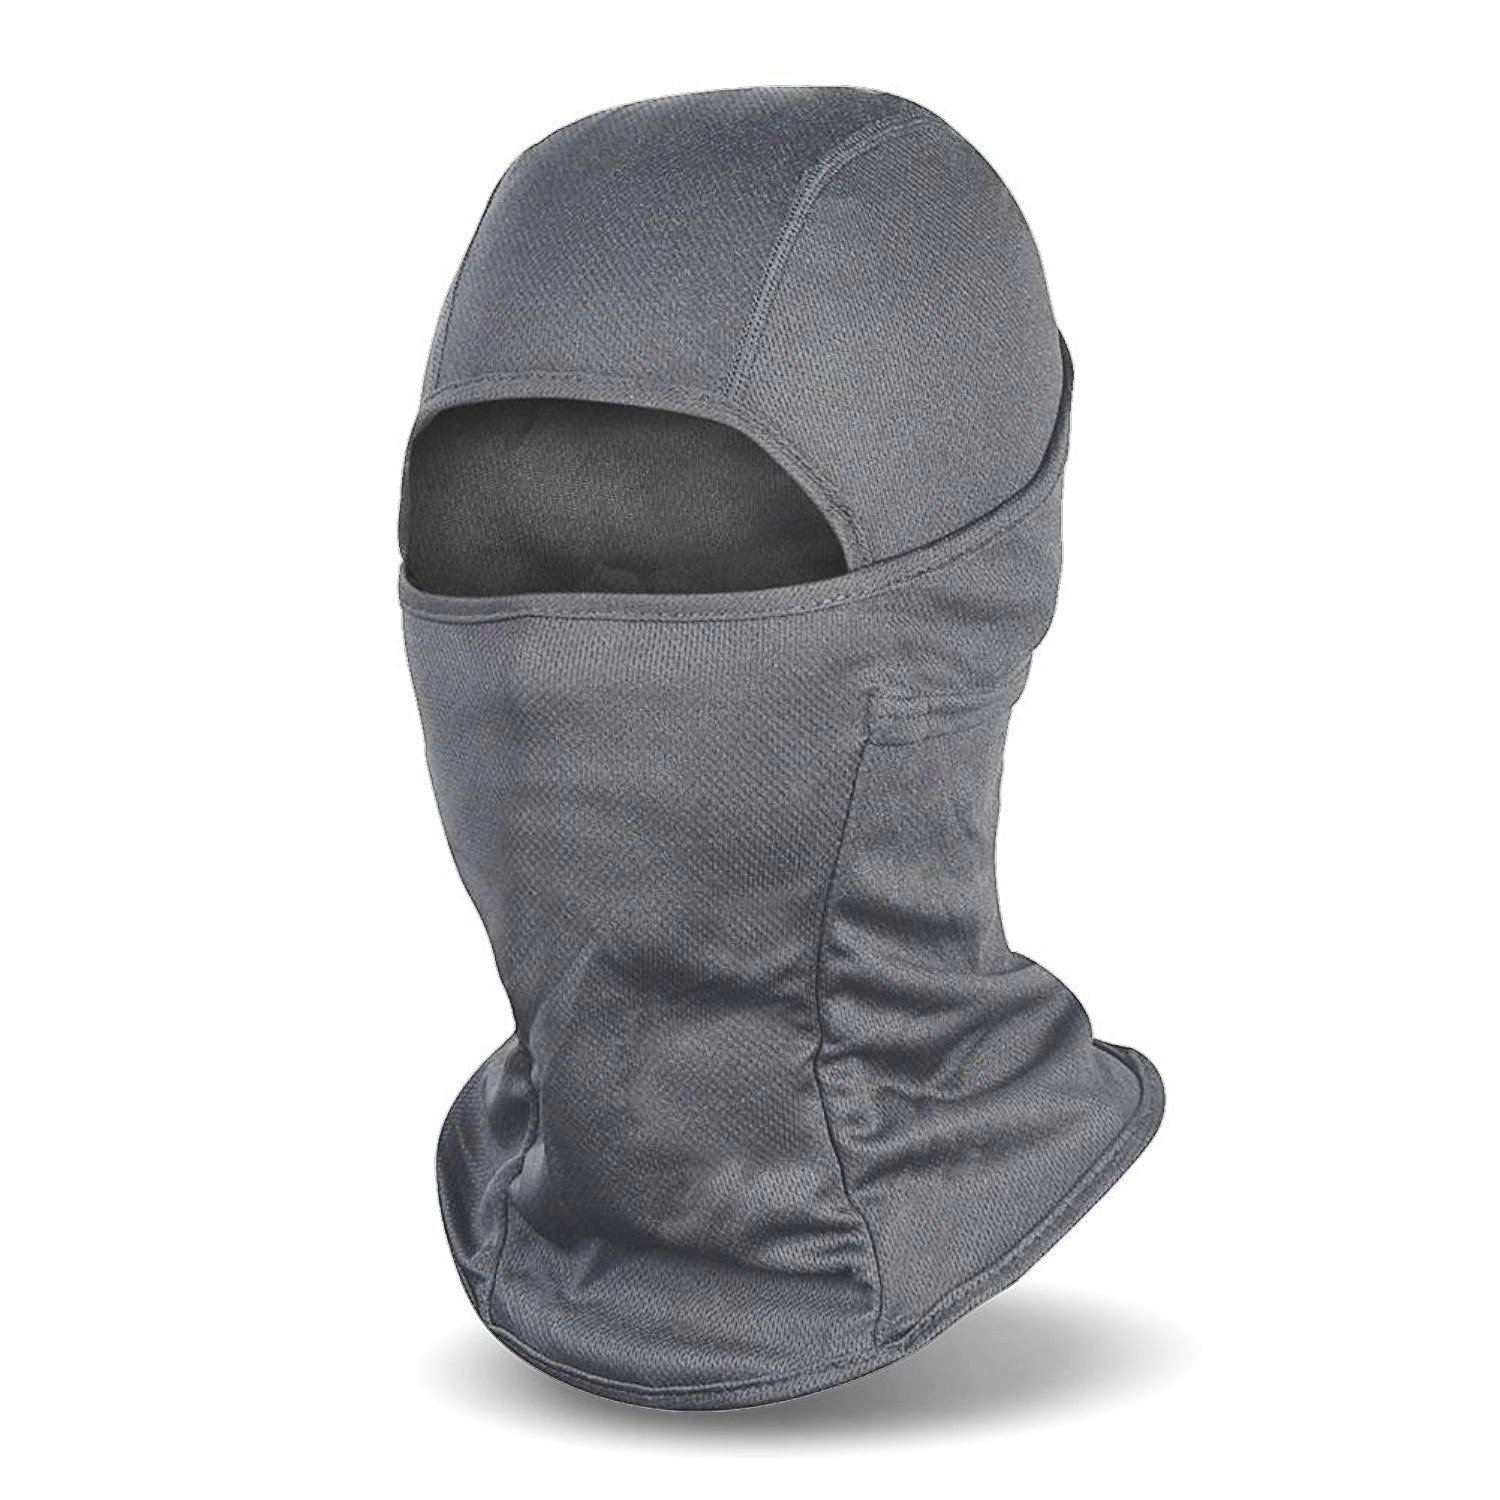 Balaclava Windproof Ski Mask Cold Weather Face Mask Motorcycle Neck Warmer Tactical Hood Afghan Tan BV01-ATN